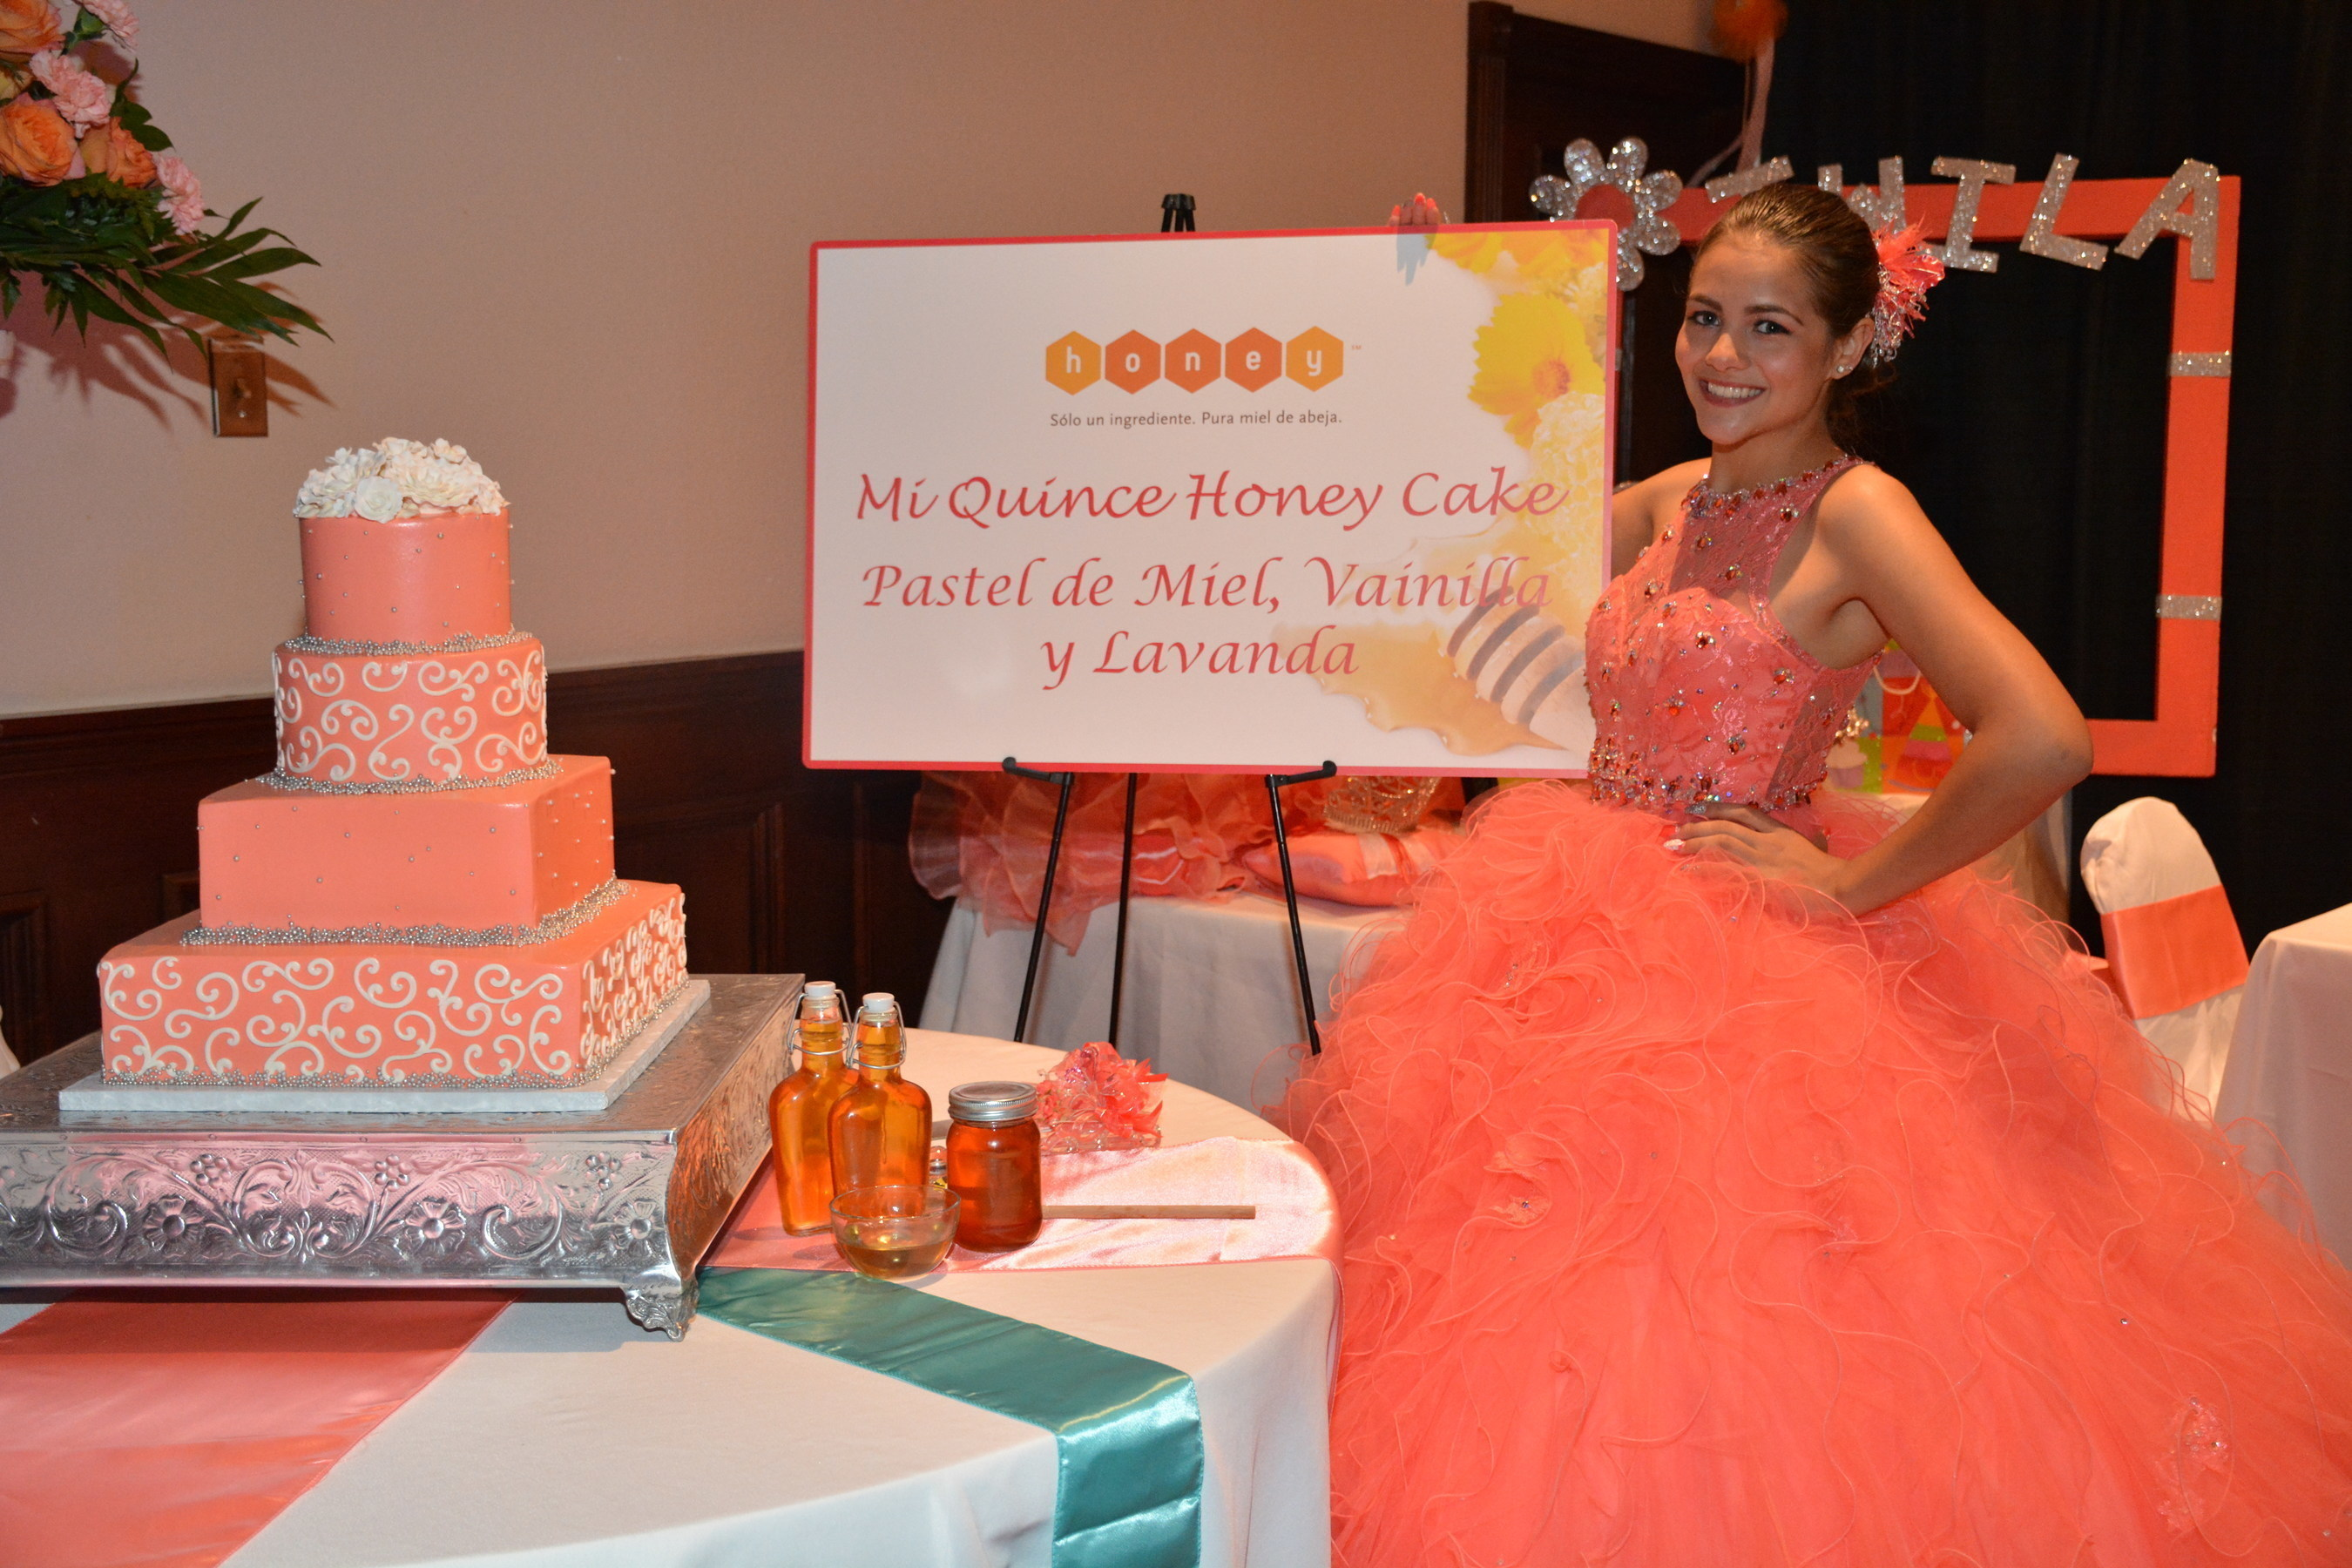 "Quinceanera de Austin Twila R. con su bellisimo pastel a base de miel ""Quince Honey Cake"", presentado por The National Honey Board. Foto cortesia: The National Honey Board"